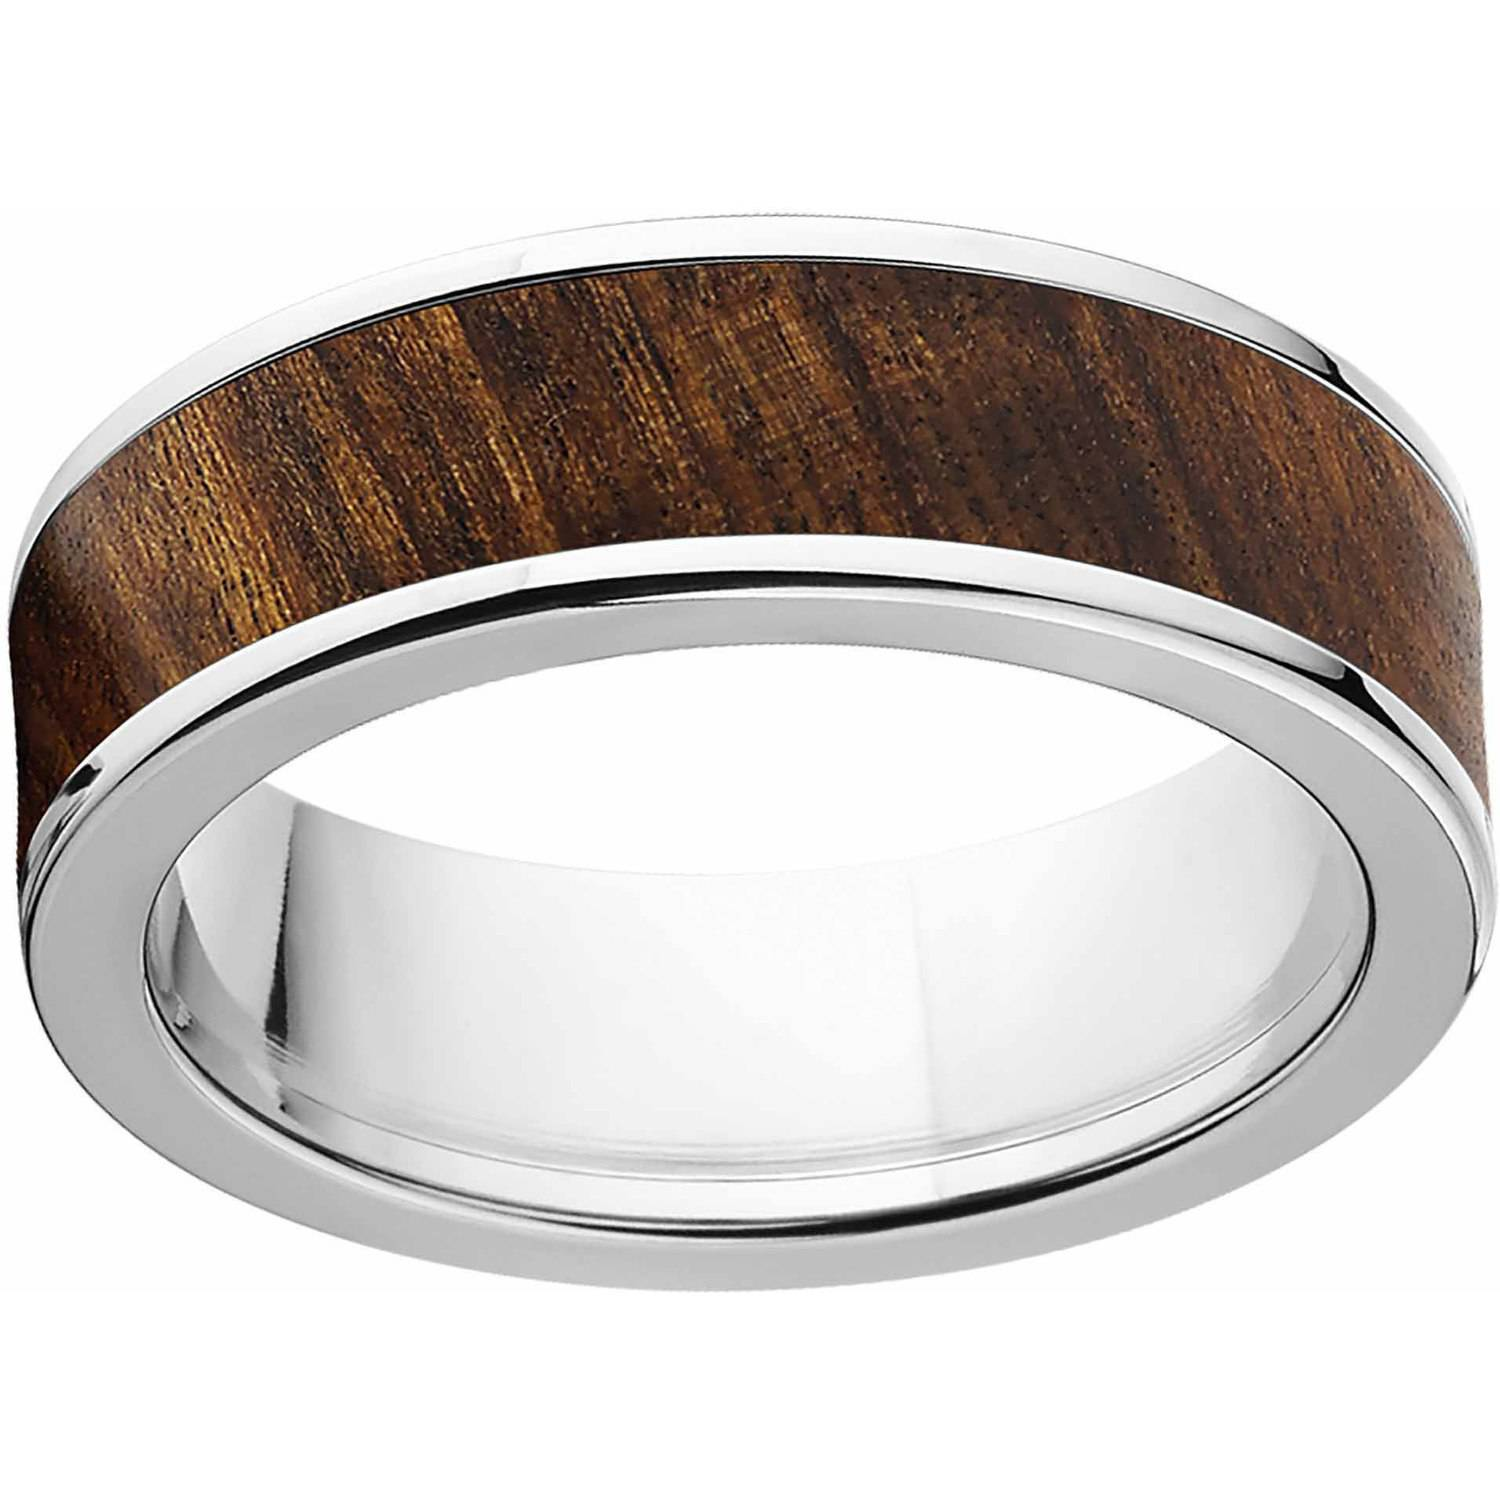 Men's 7mm Tamboti Exotic Wood Stainless Steel Band